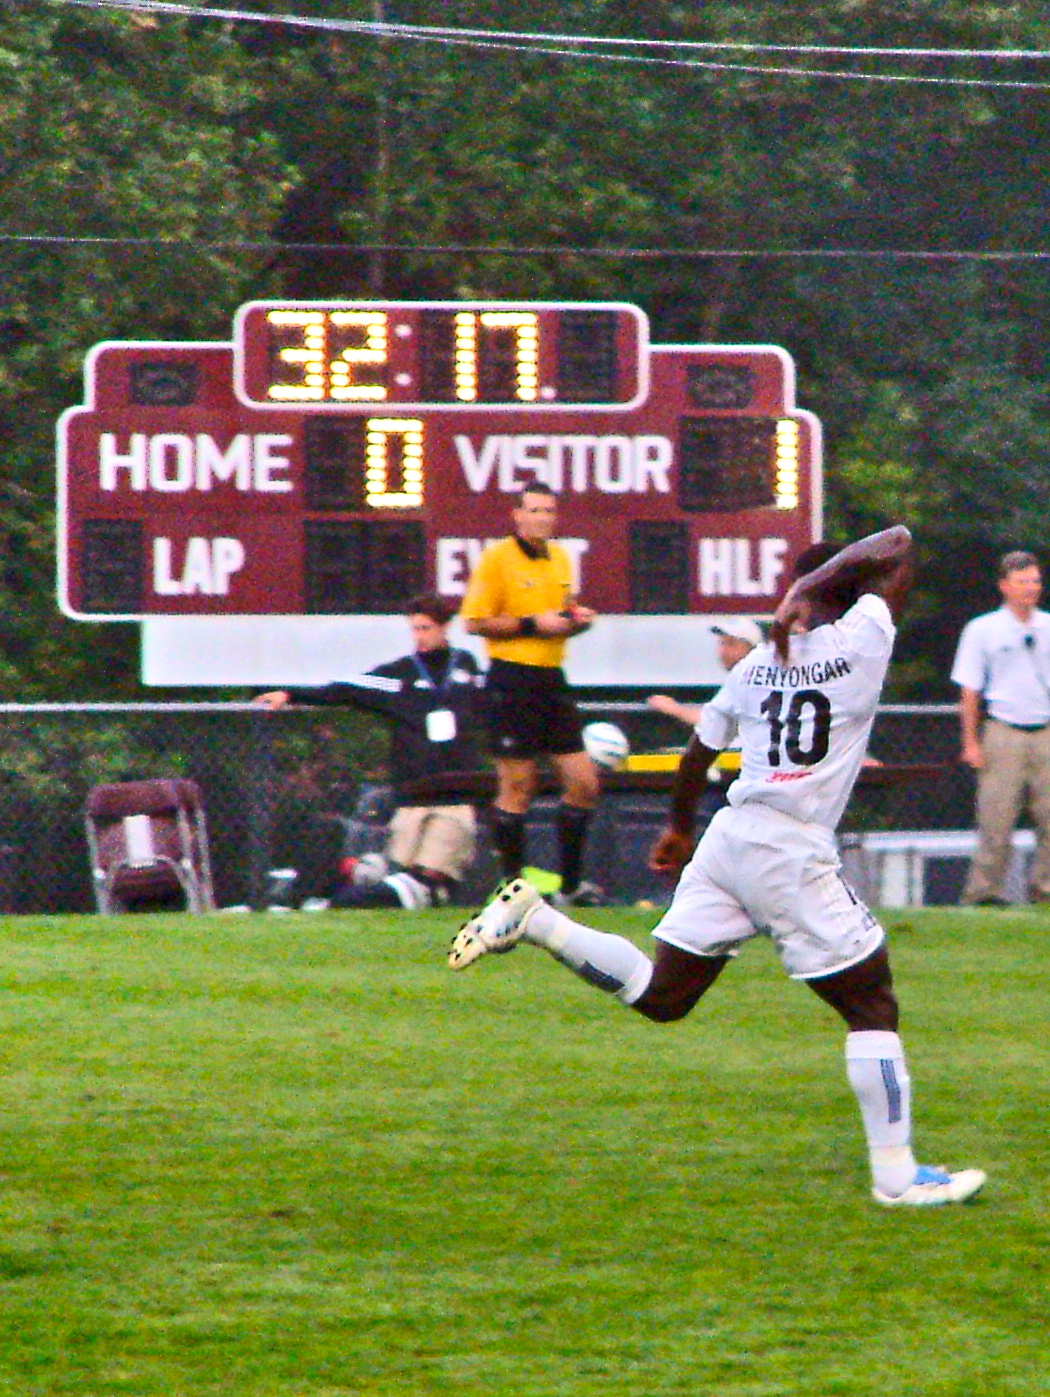 In the absence of star striker Melvin Tarly, Minnesota's Johnny 'Tiny Ticket' Menyongar stepped up with two goals to fire the Thunder past reigning Open Cup champions Kansas City in the 2005 edition of the tournament.